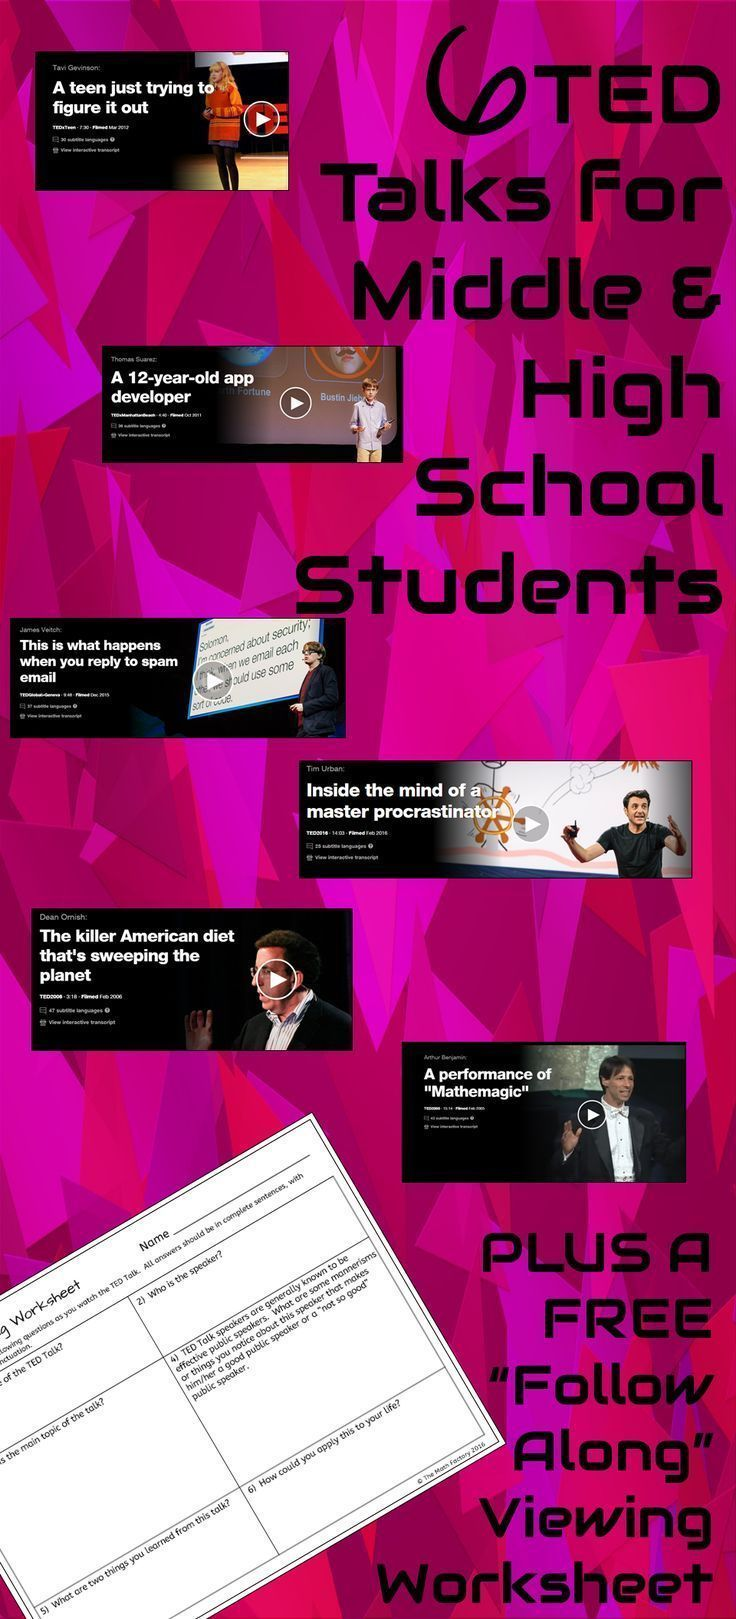 A blog post on TED Talk suggestions for middle and high school. Free viewing worksheet download as well!